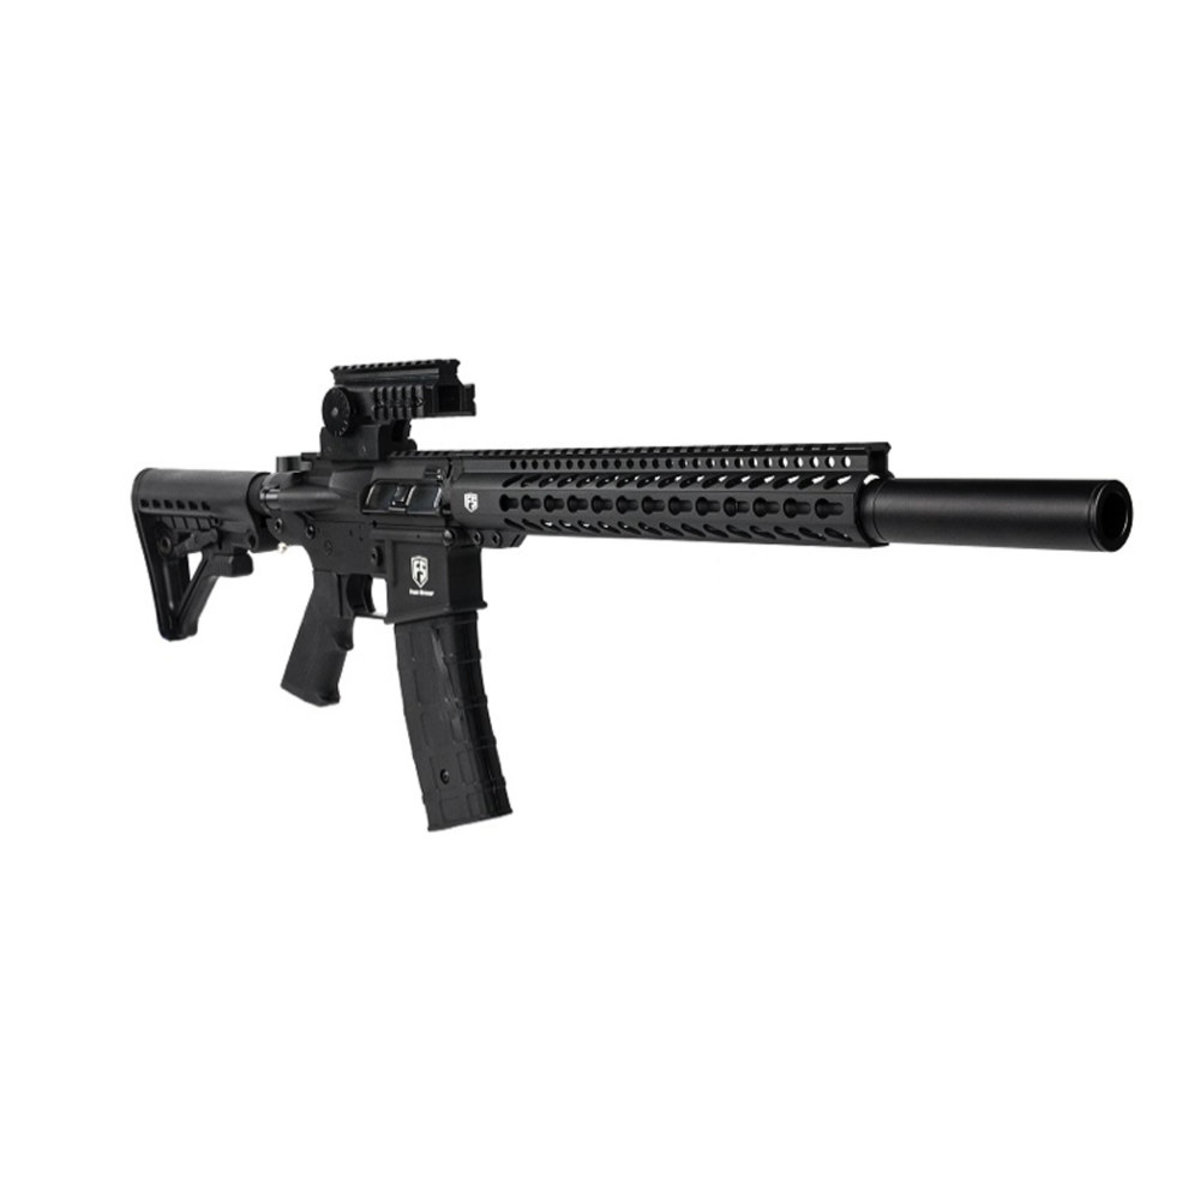 View larger image of First Strike T15 Semi DMR Paintball Gun